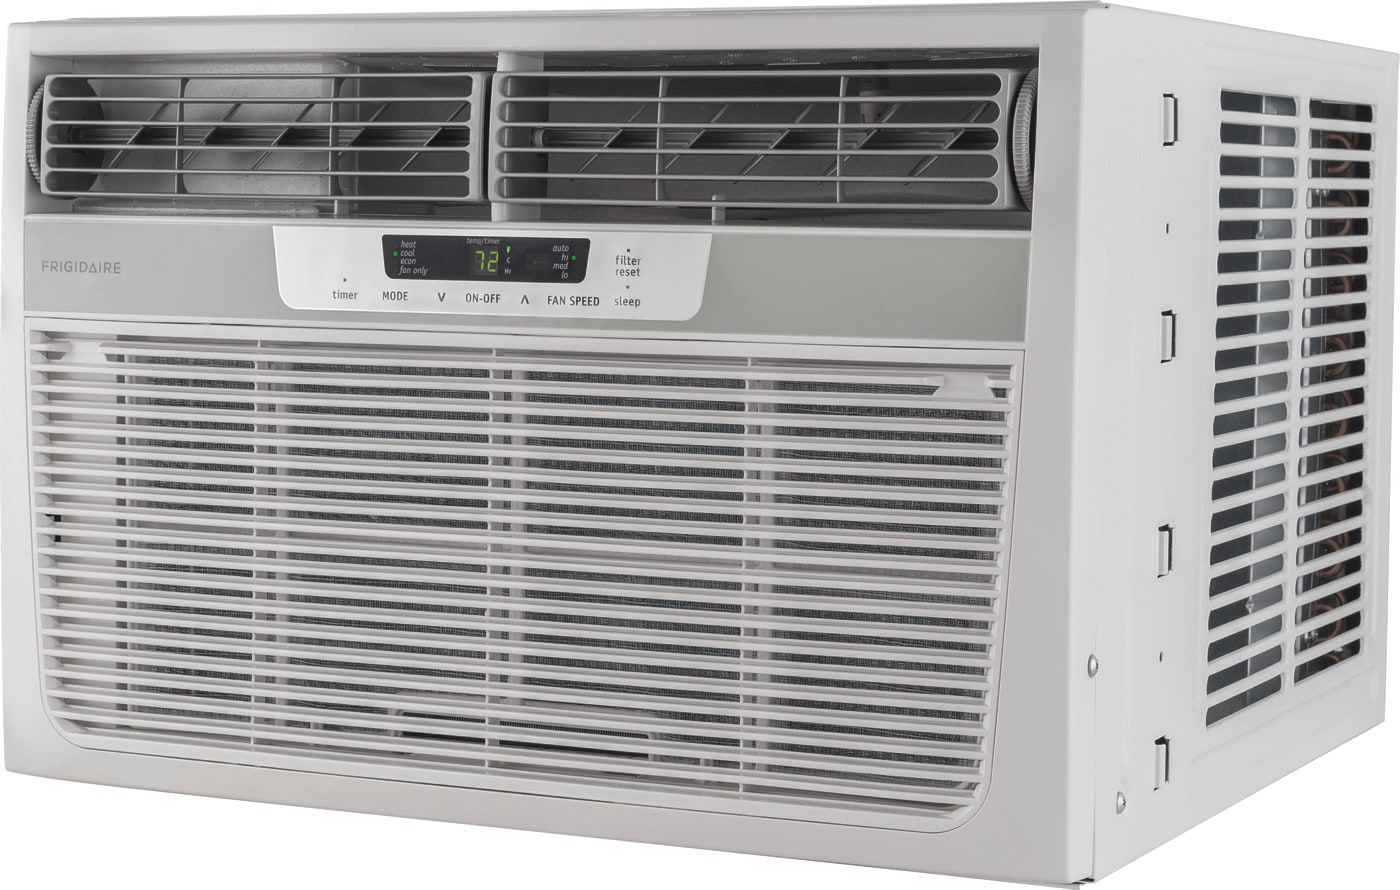 8,000 BTU Window-Mounted Room Air Conditioner with Supplemental Heat White FFRH0822R1